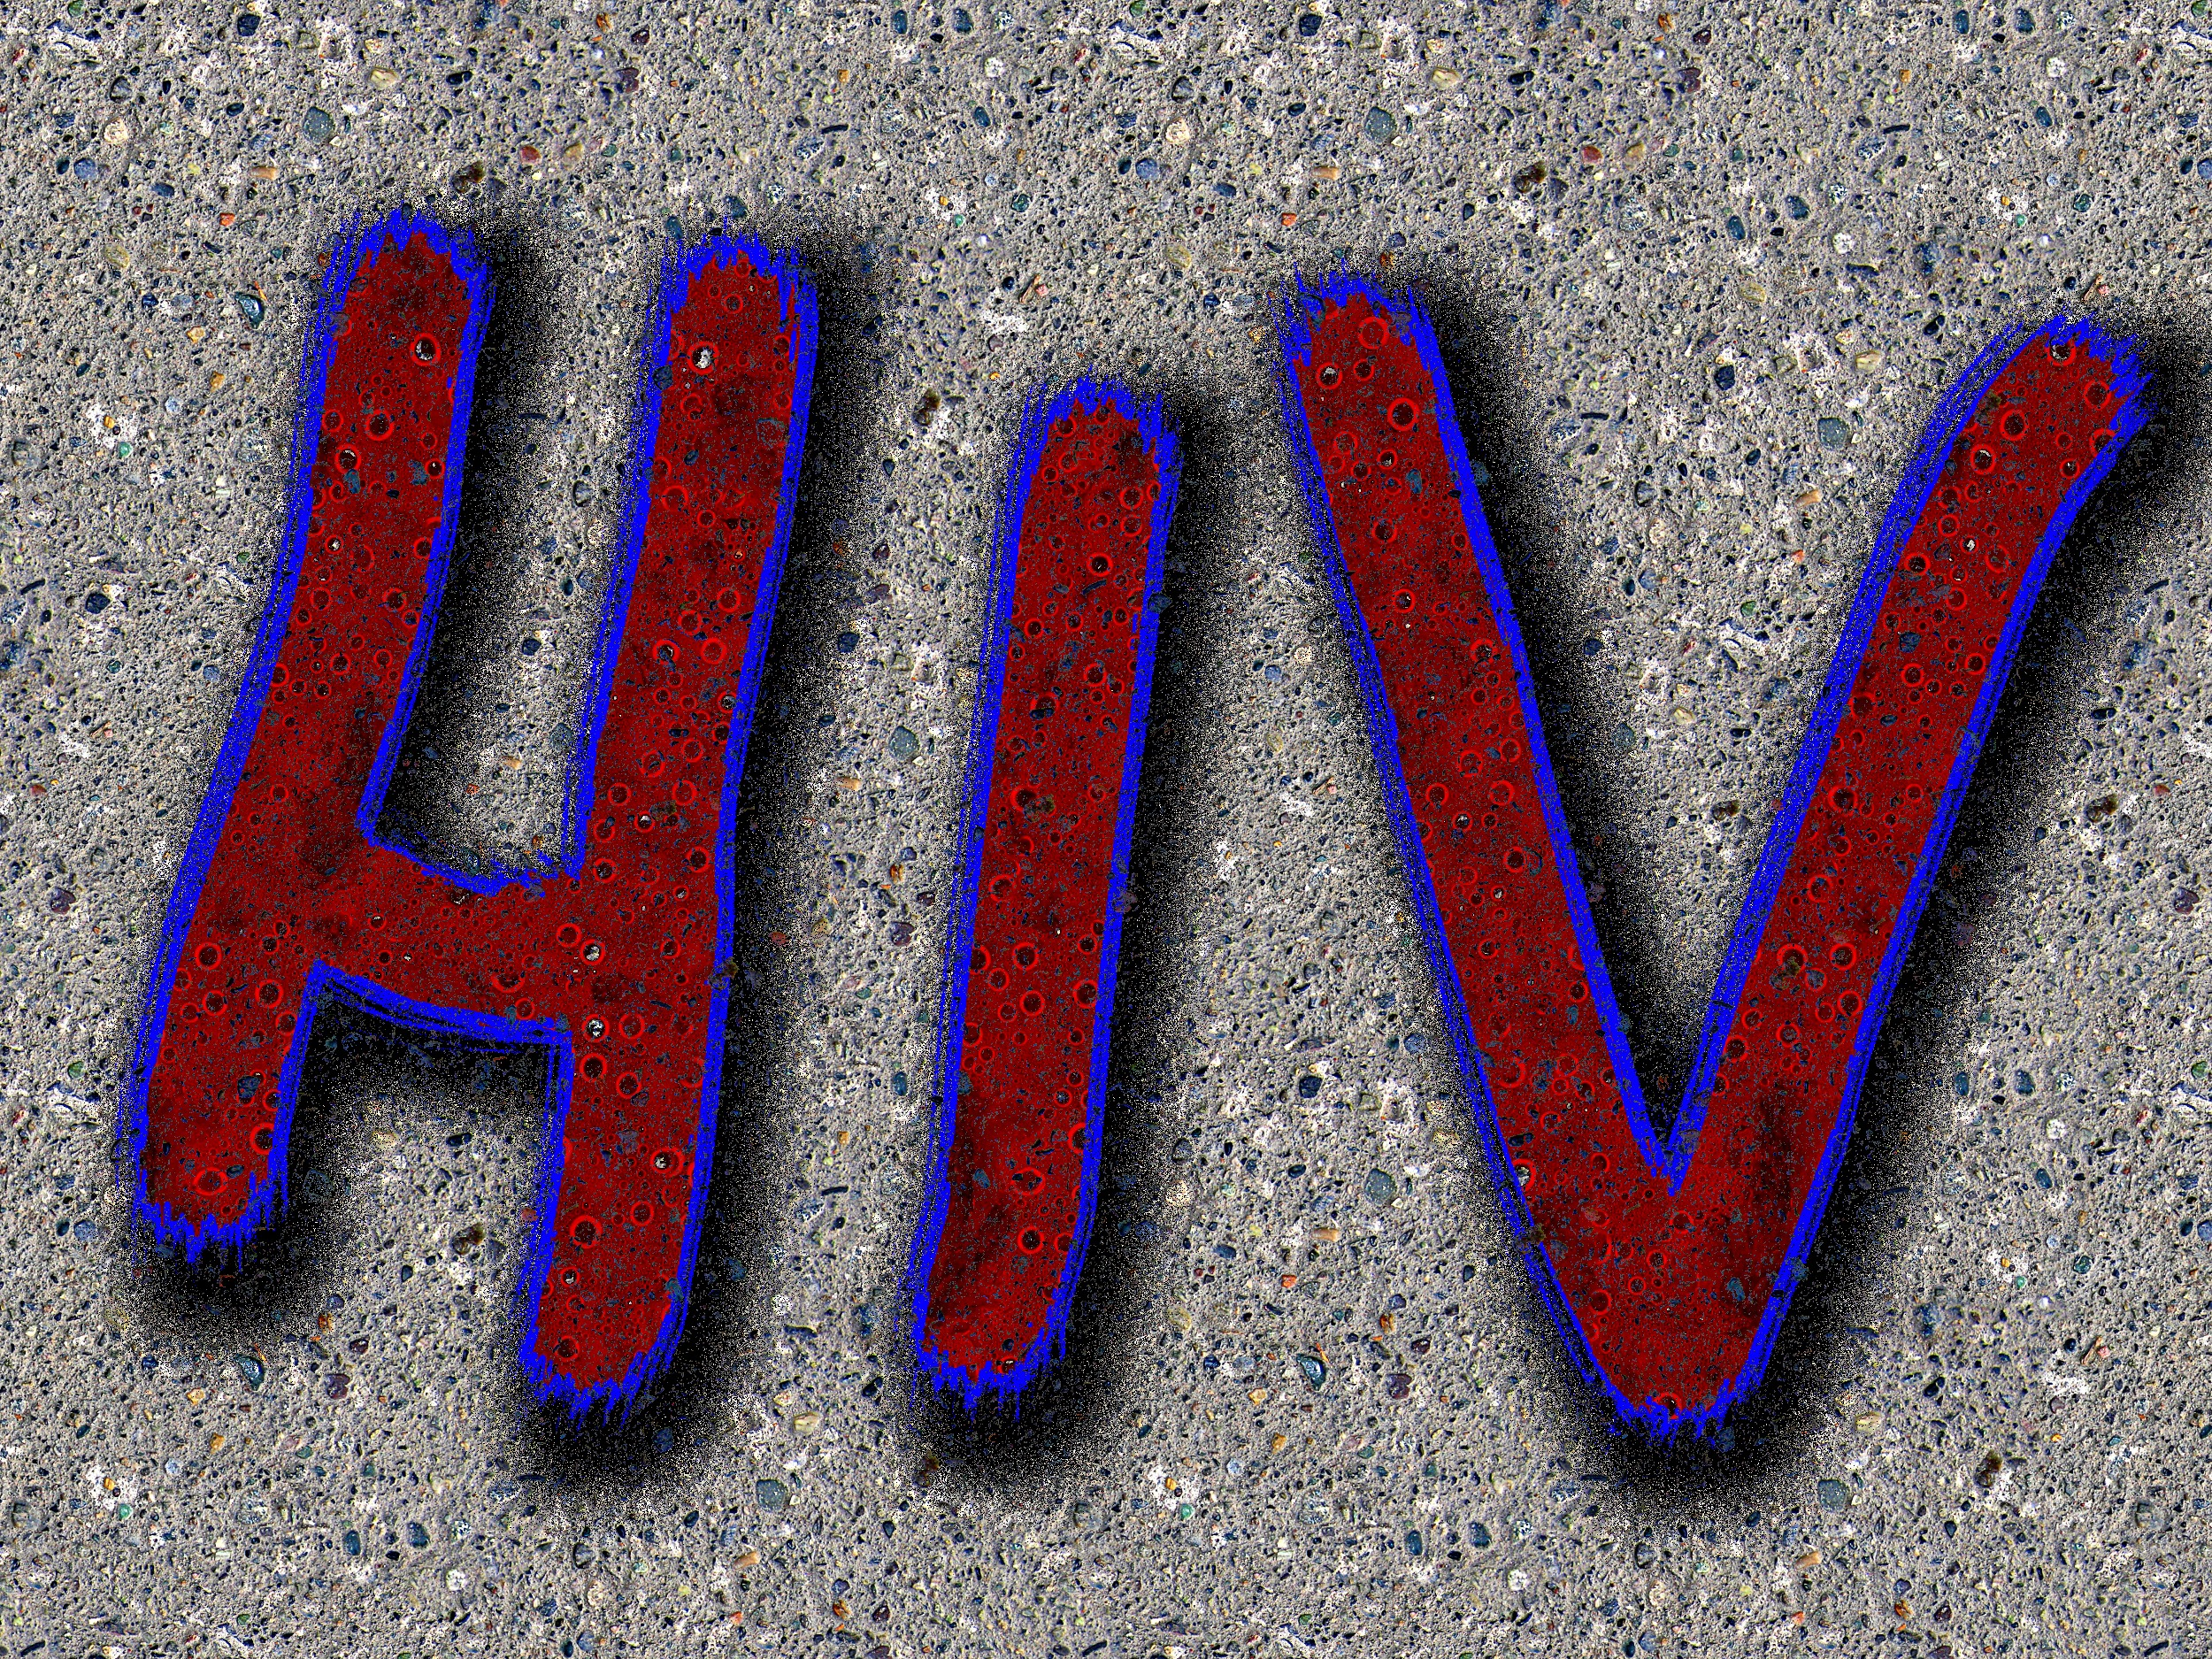 hiv, disease, health